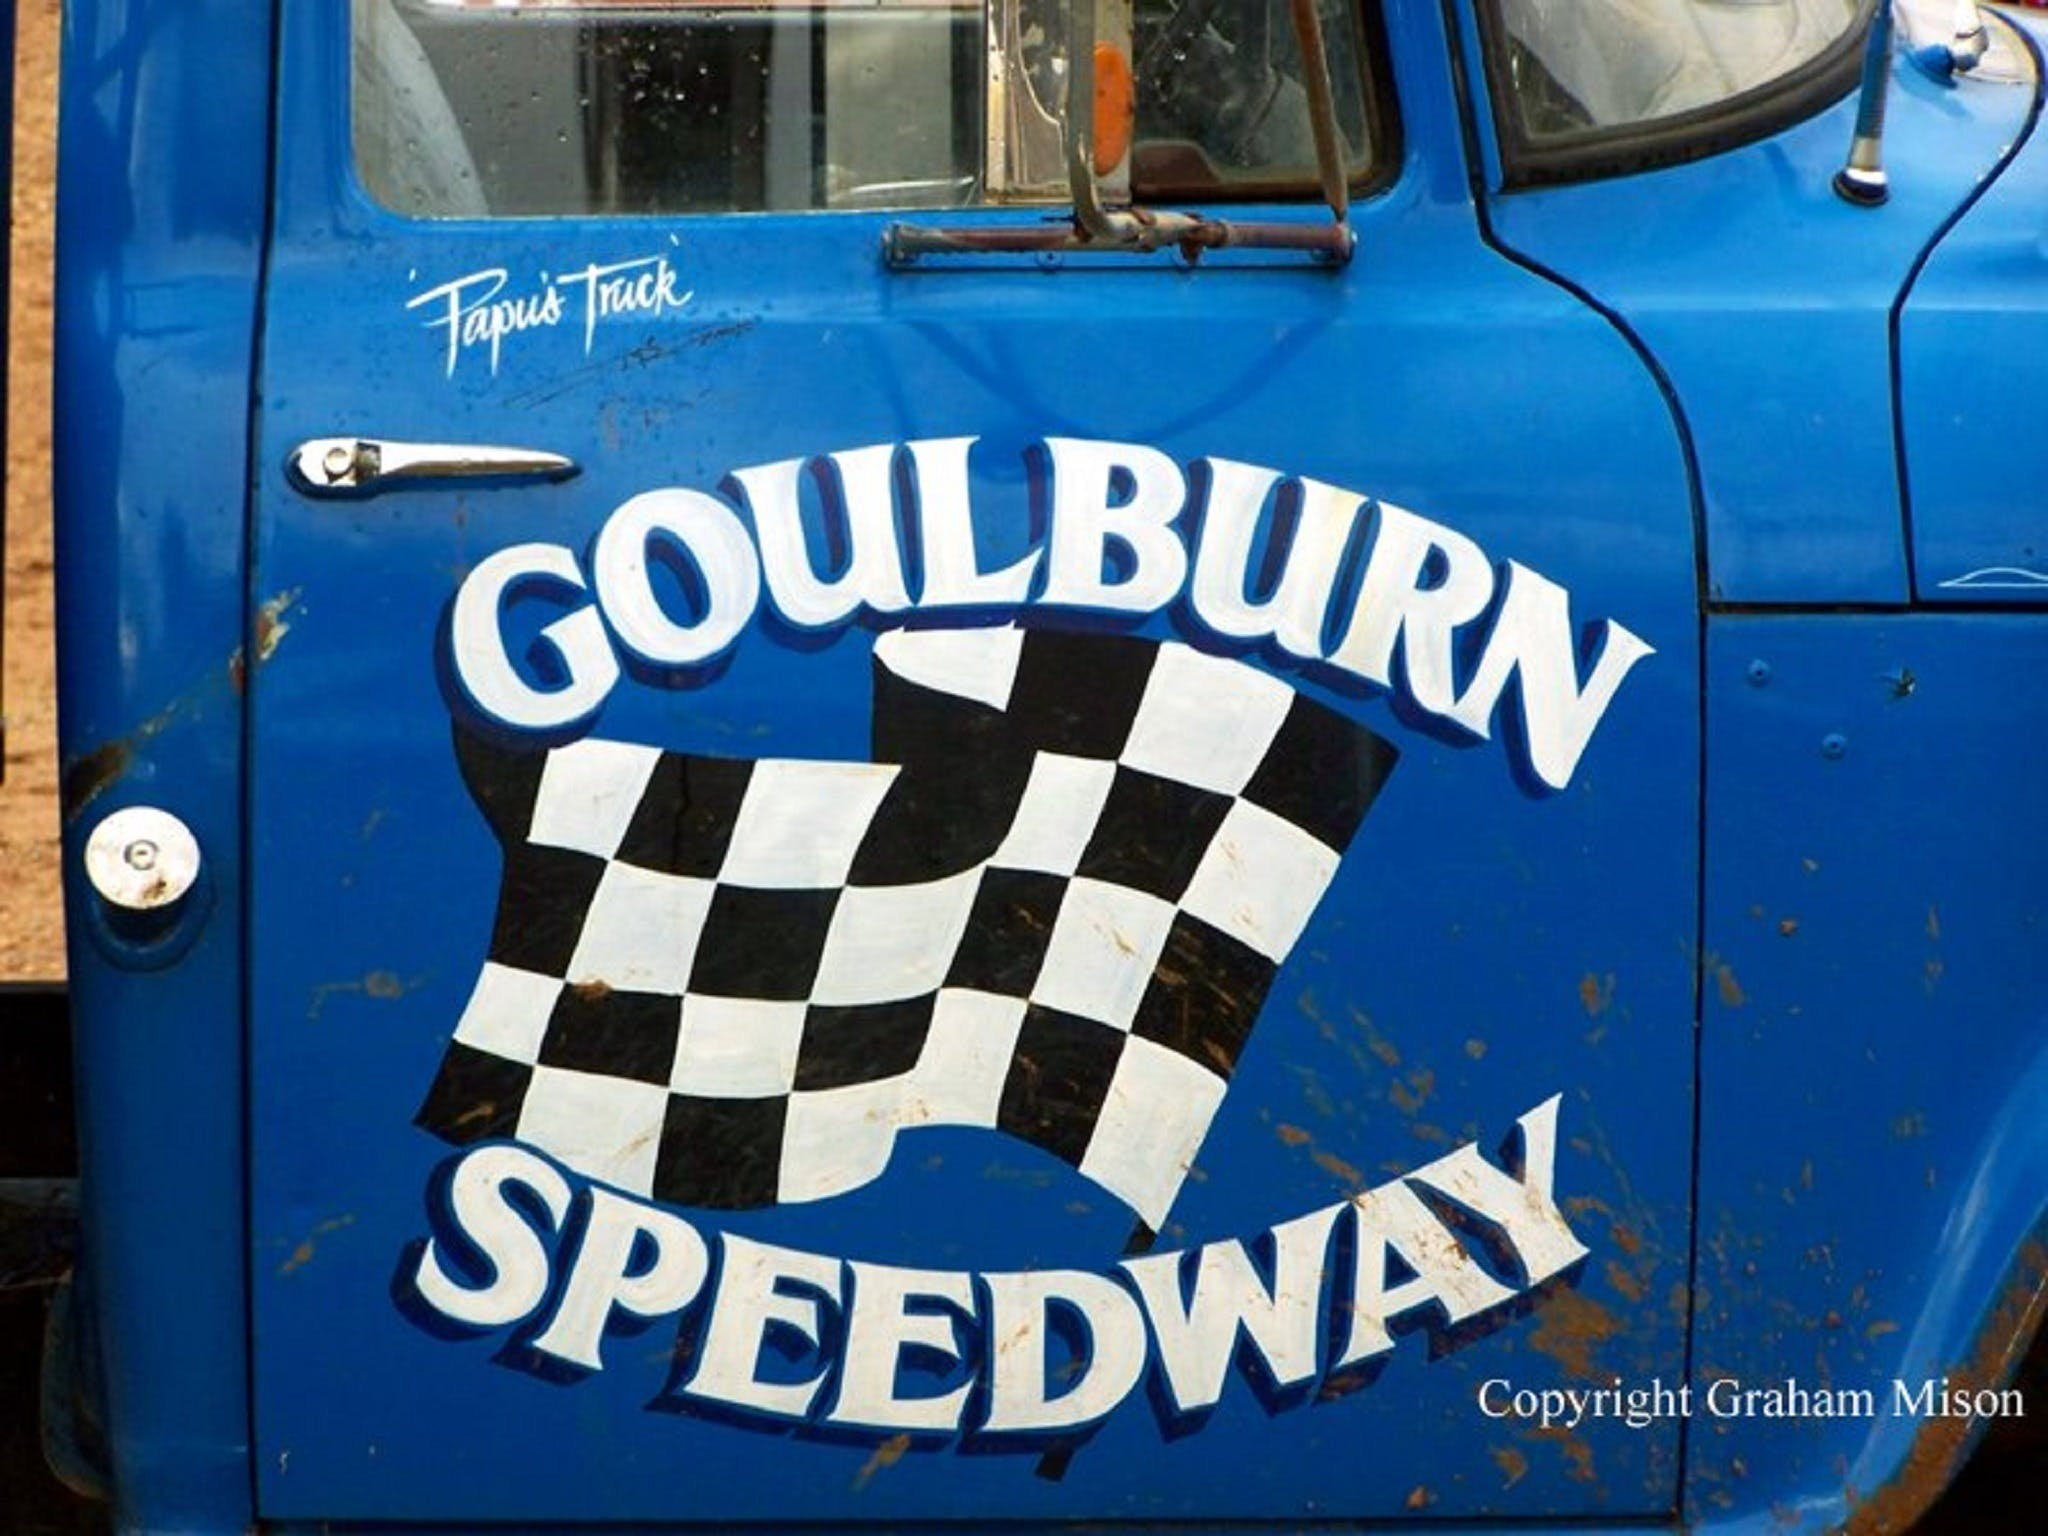 50 years of racing at Goulburn Speedway - Tourism Adelaide